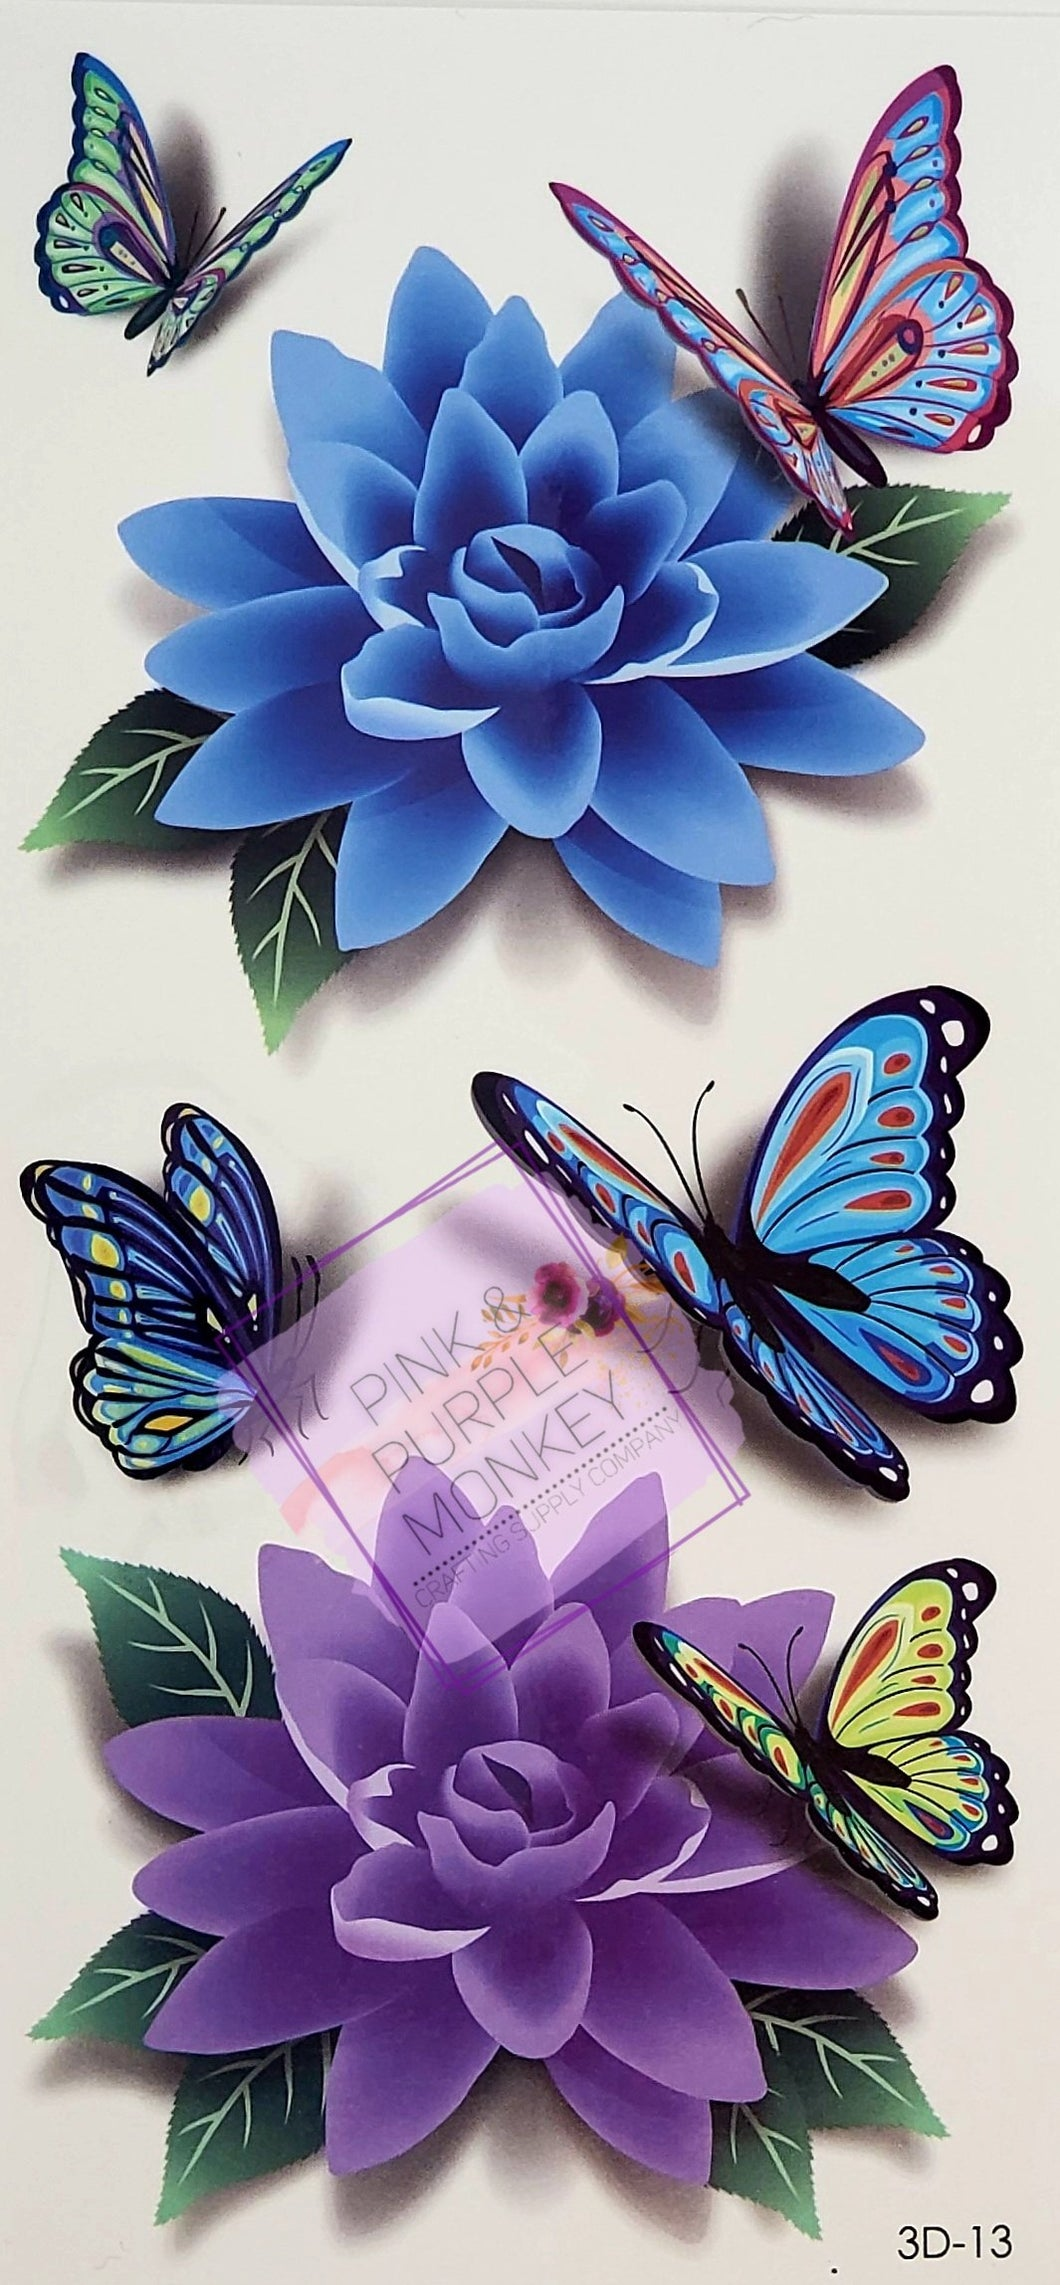 Blue and Purple Flowers with Butterfly Tattoos - 7 x 3